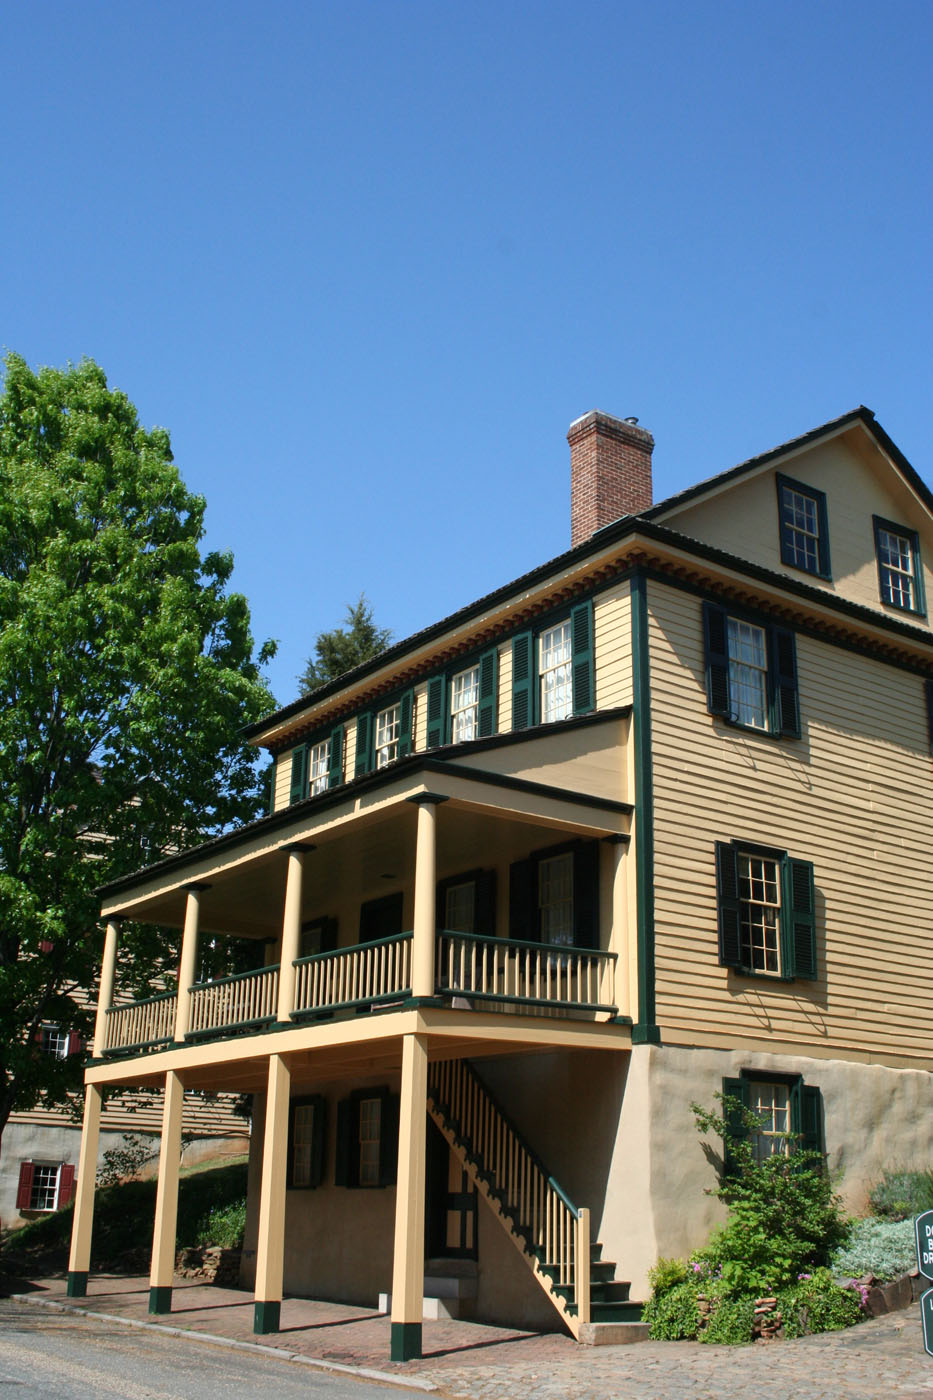 Moravian Bethania and Old Salem, N.C., Clinard History   busybeetraveler